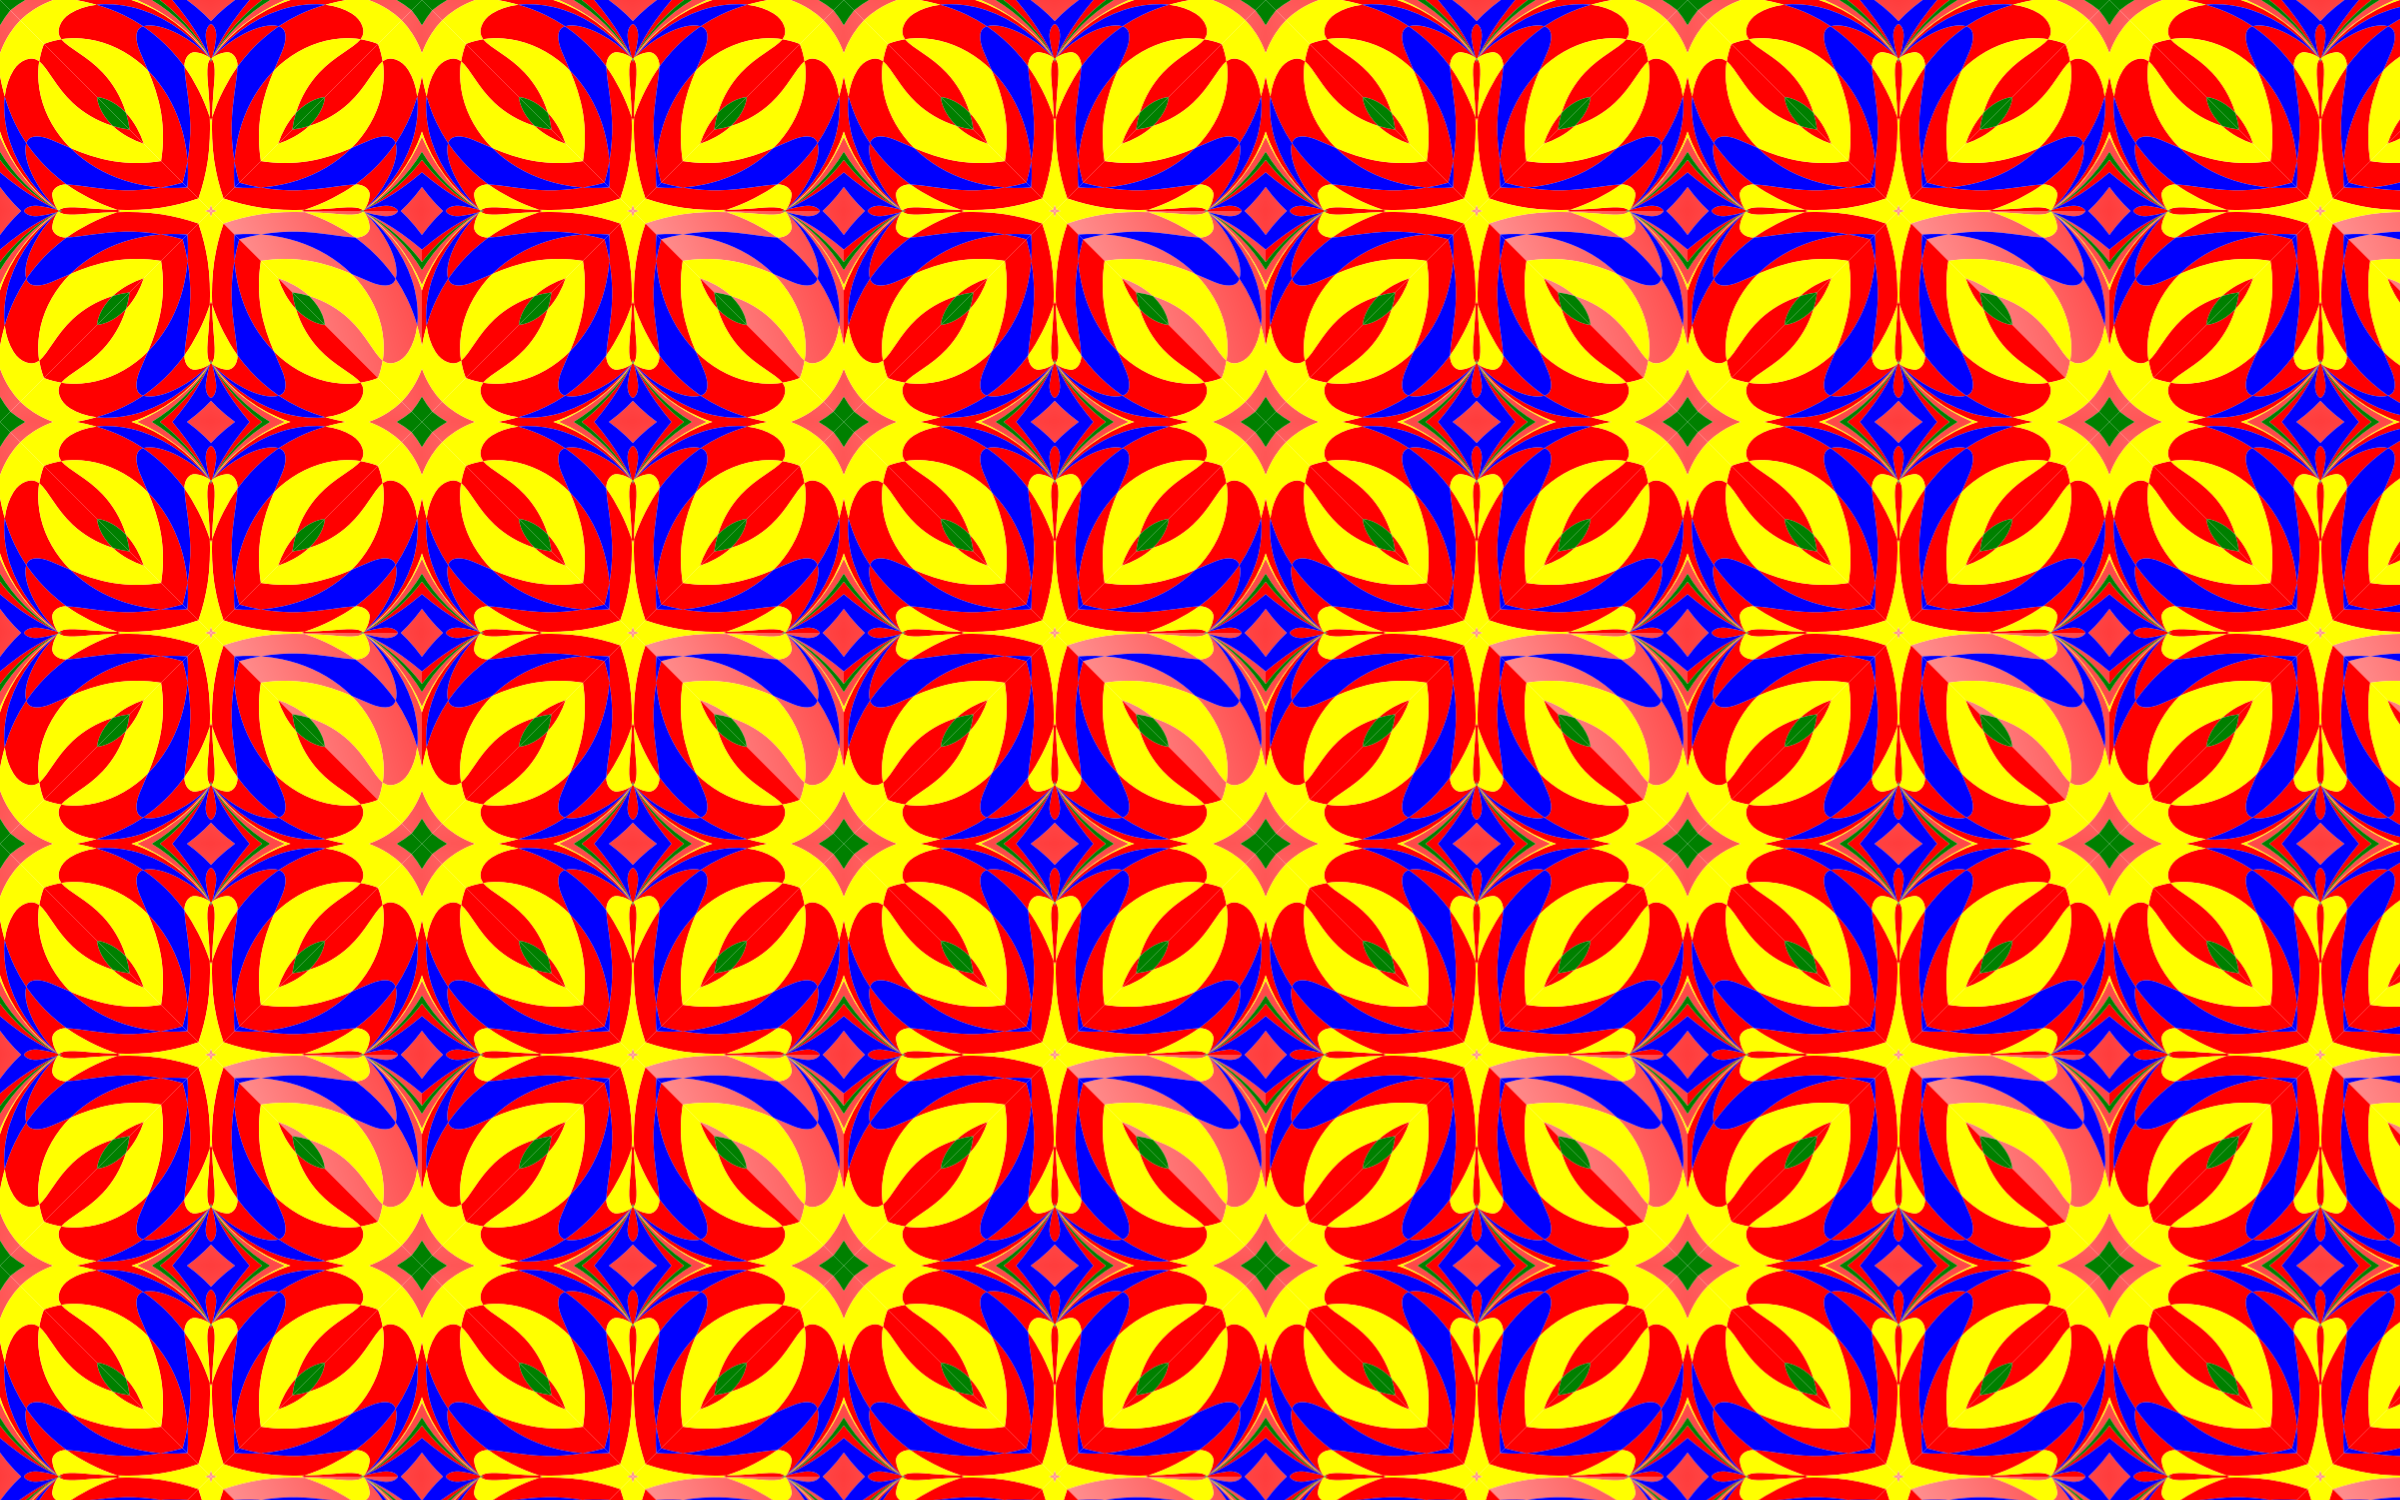 Seamless Pattern 78 by GDJ